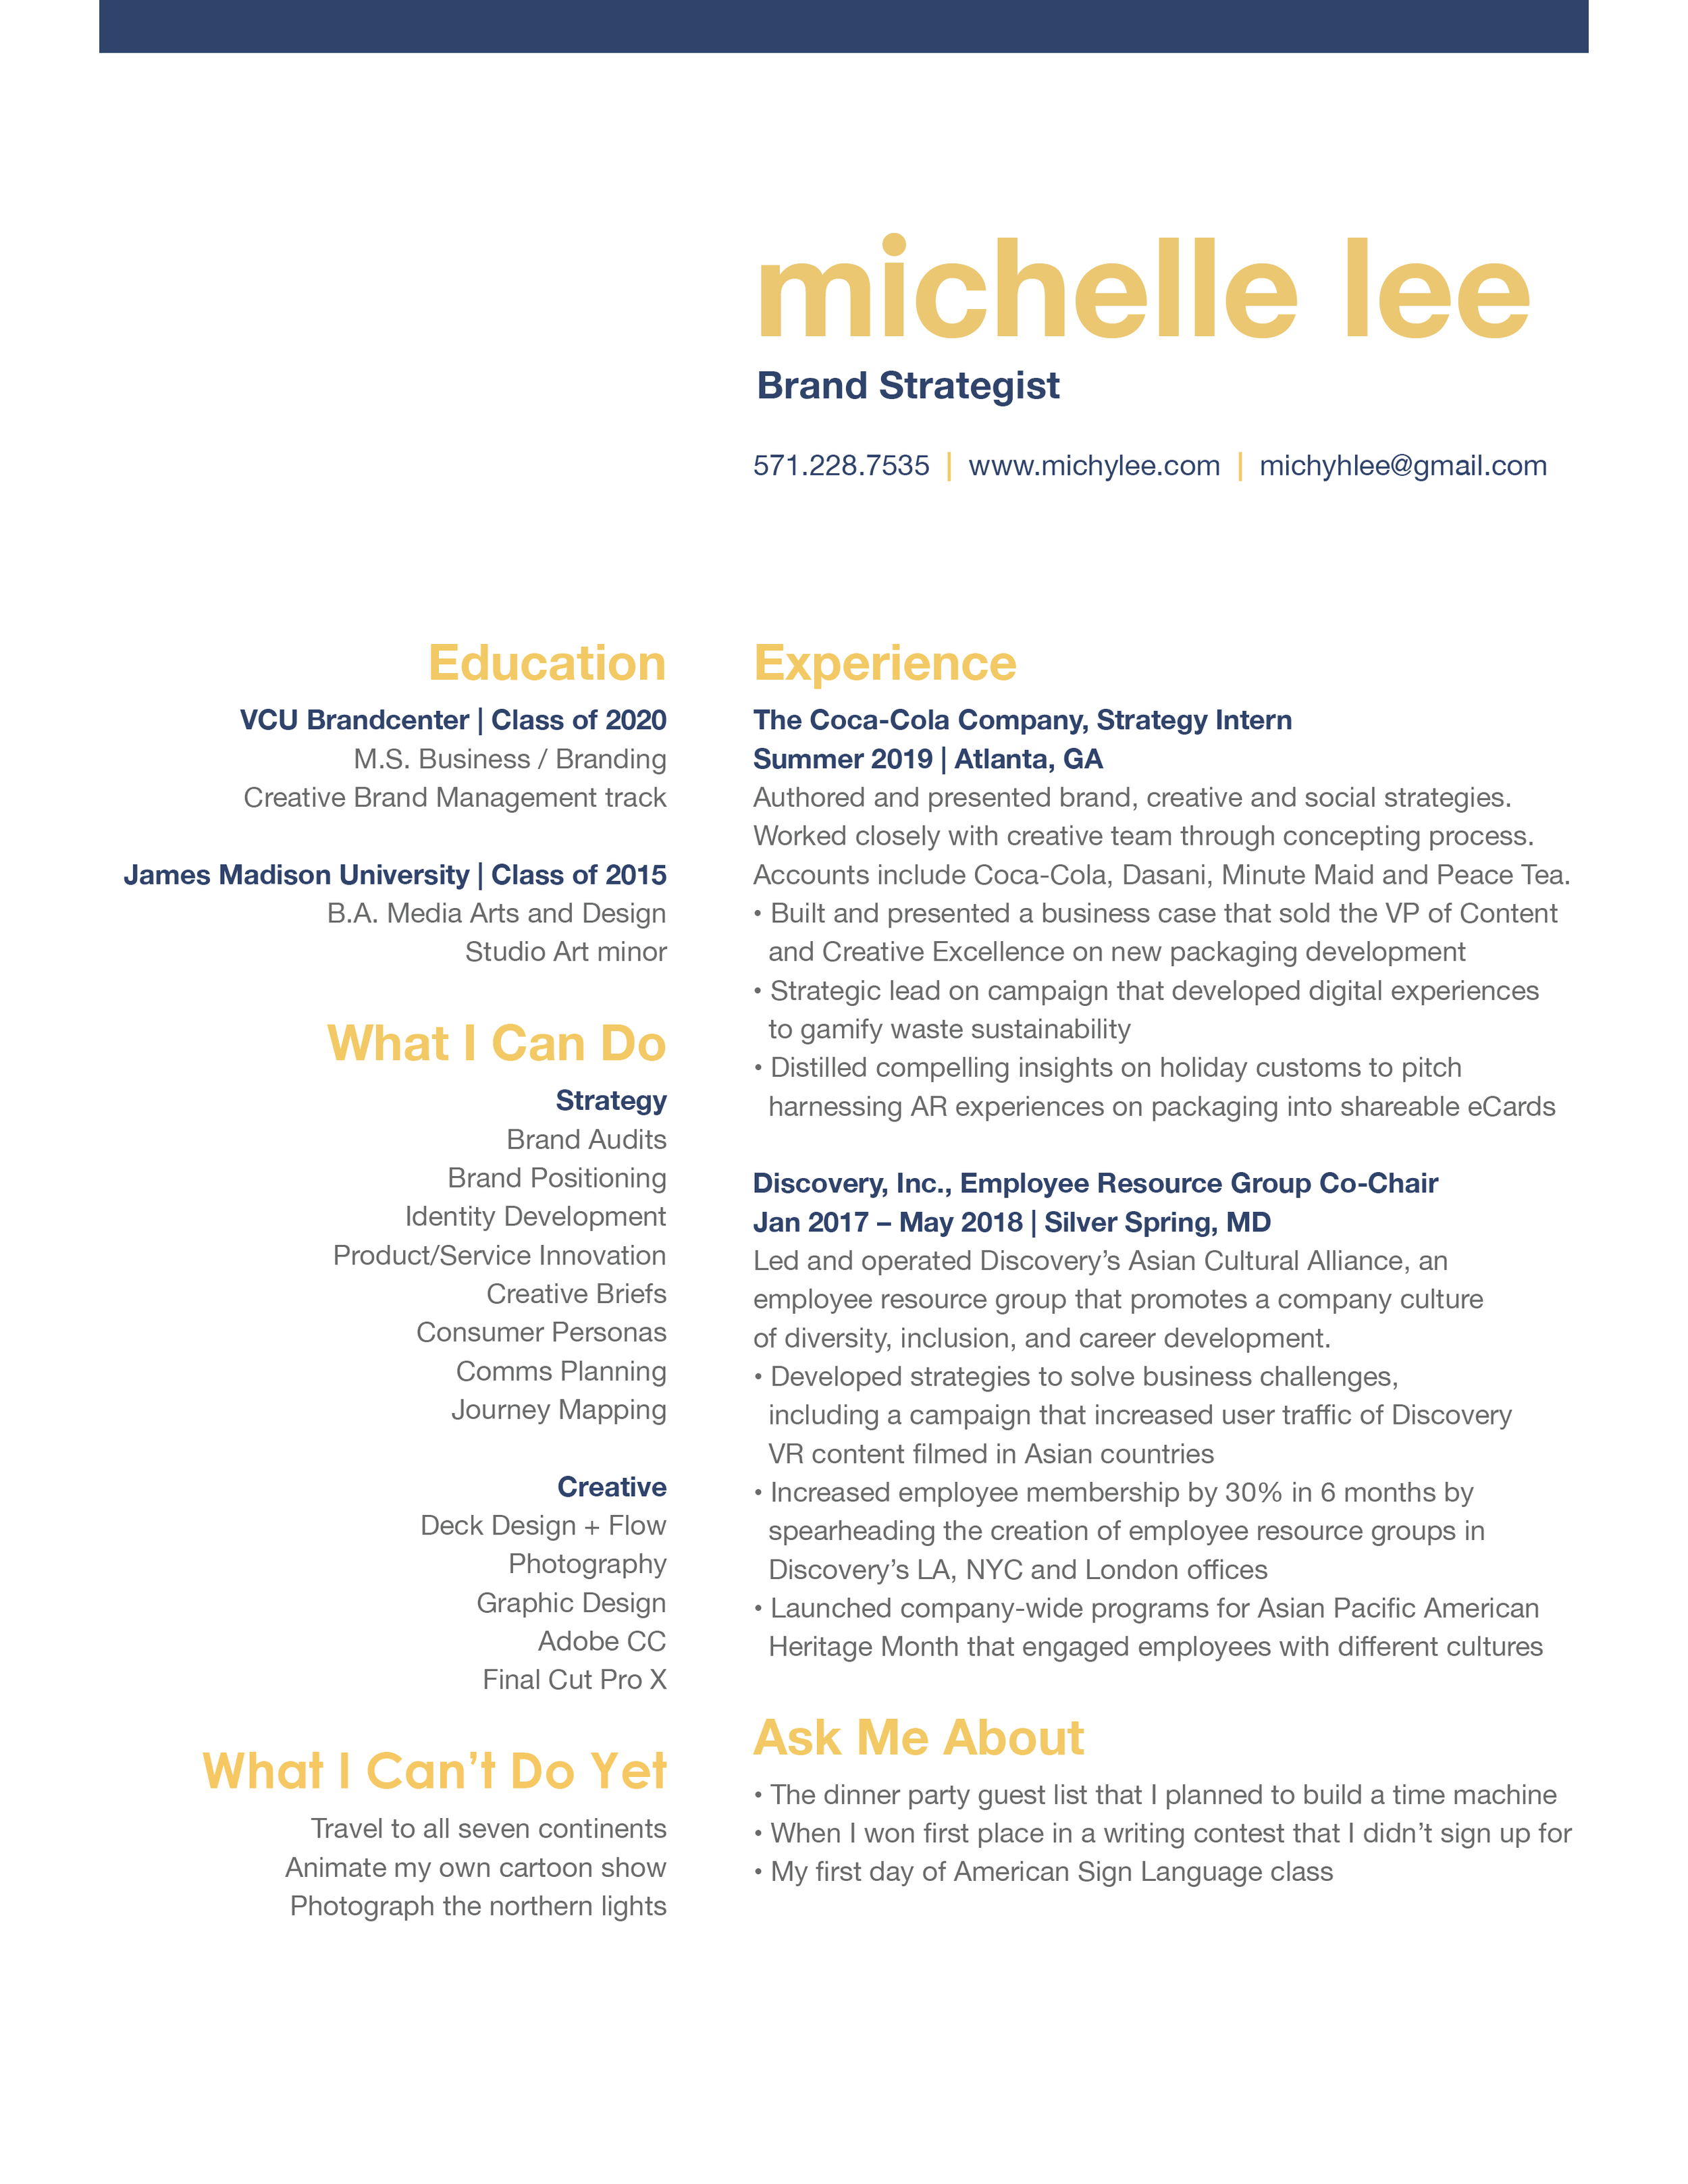 MichelleLee_Resume_2019.png